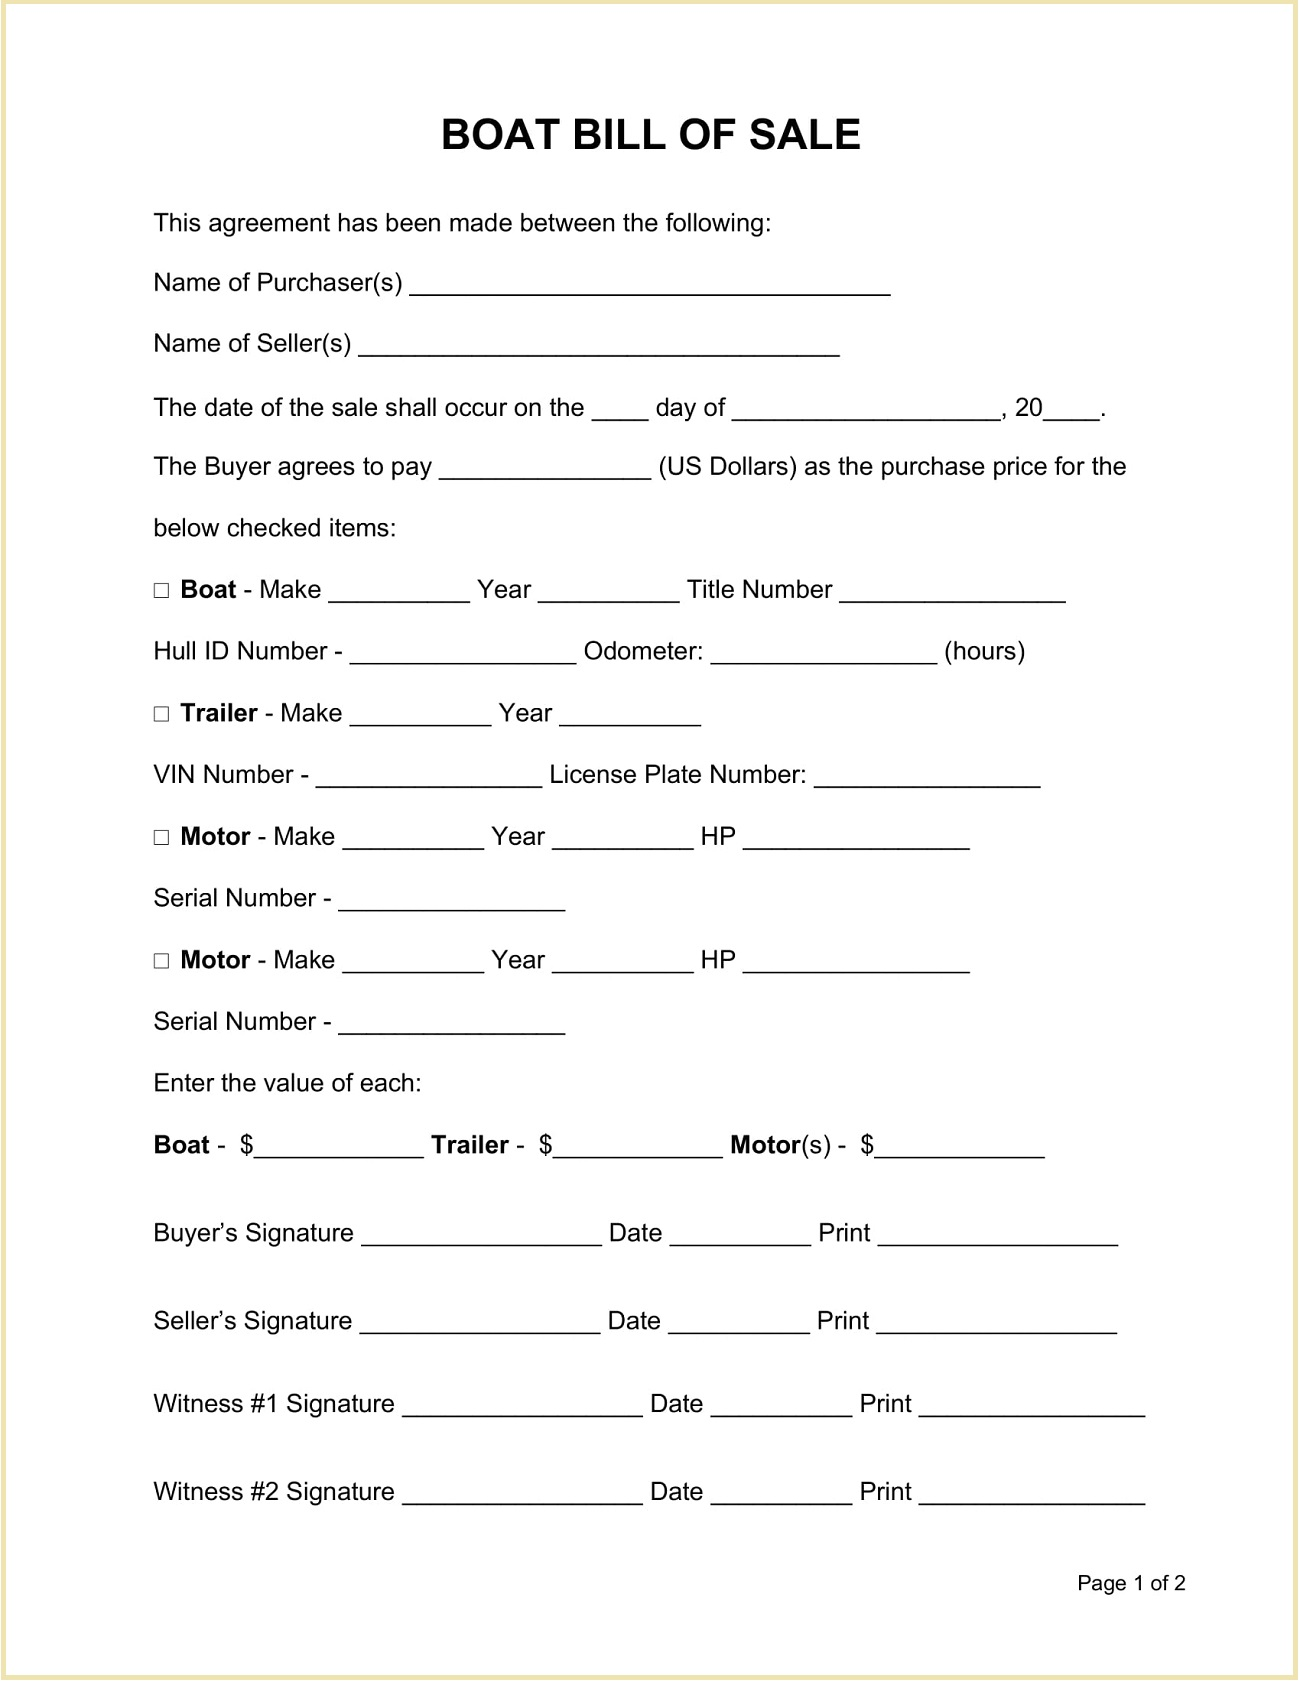 Sample Boat Bill of Sale Form Word Doc